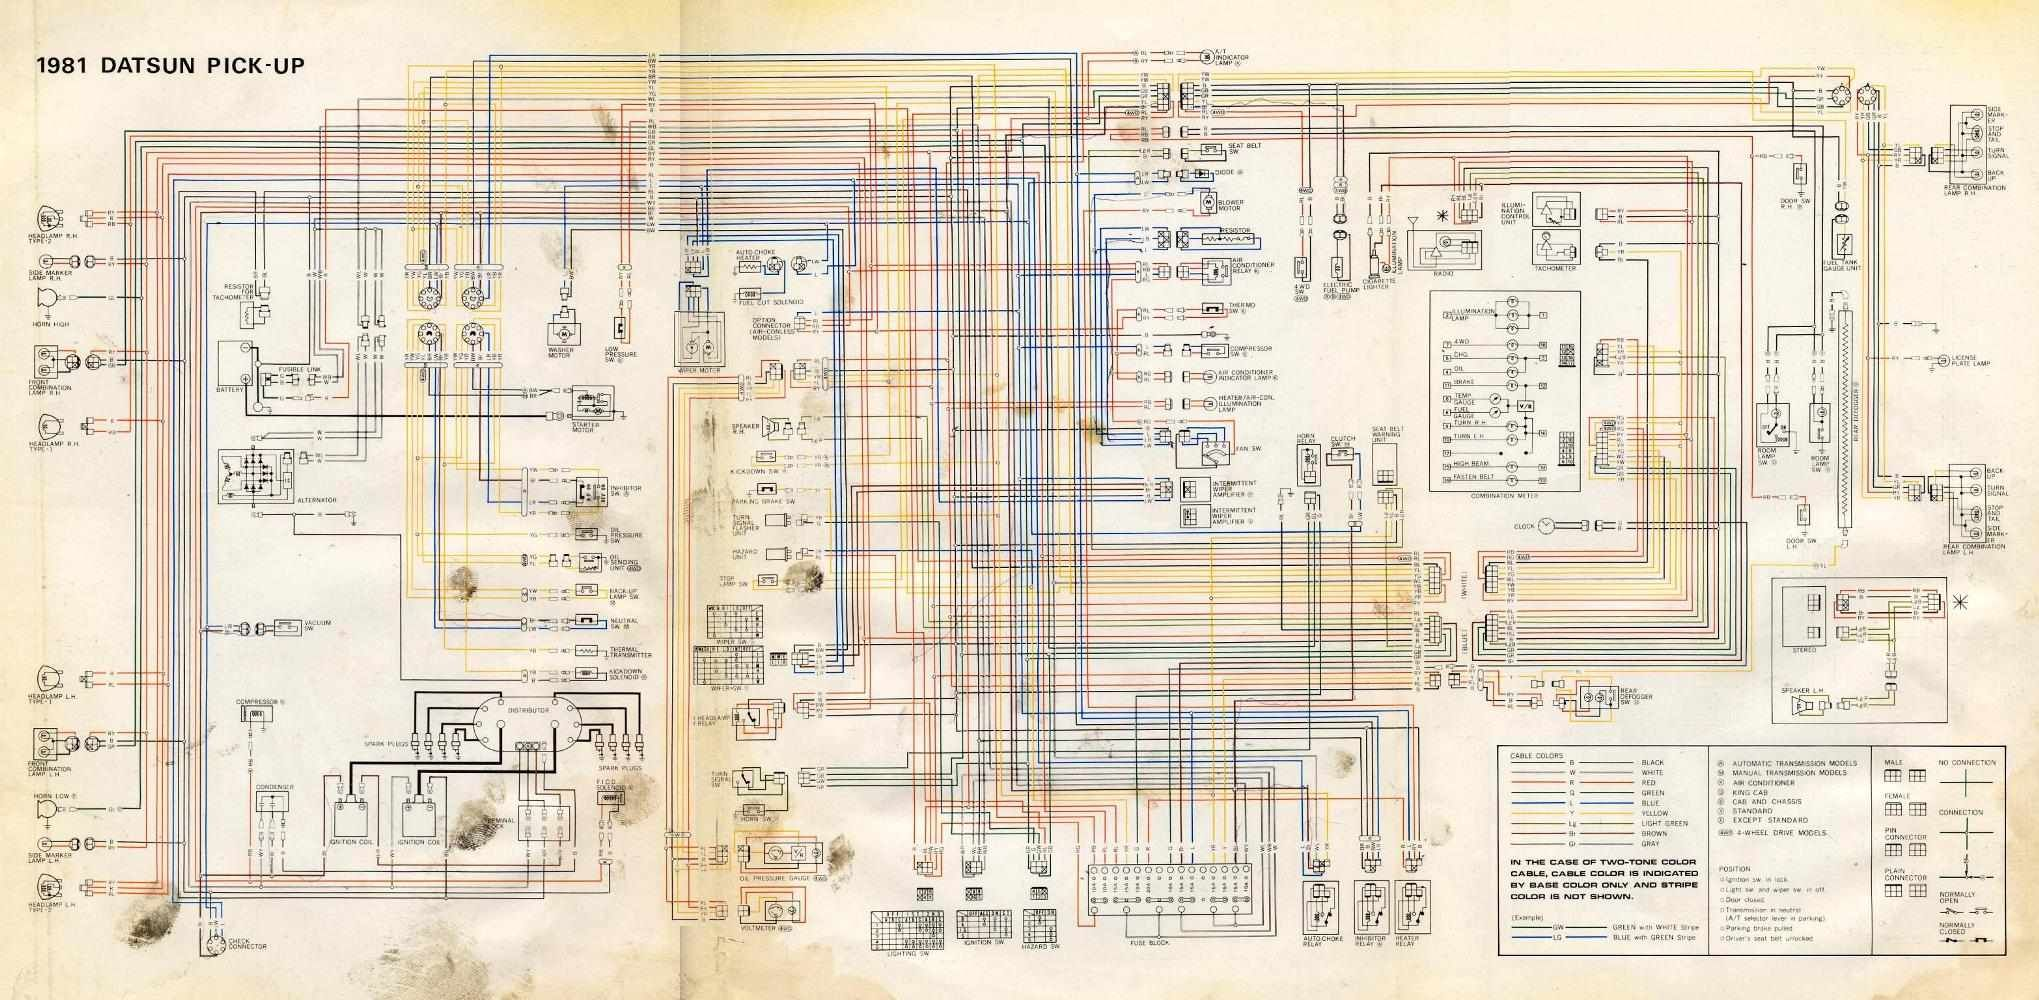 medium resolution of willys mb wiring diagram toyota celica at 1977 datsun 280z